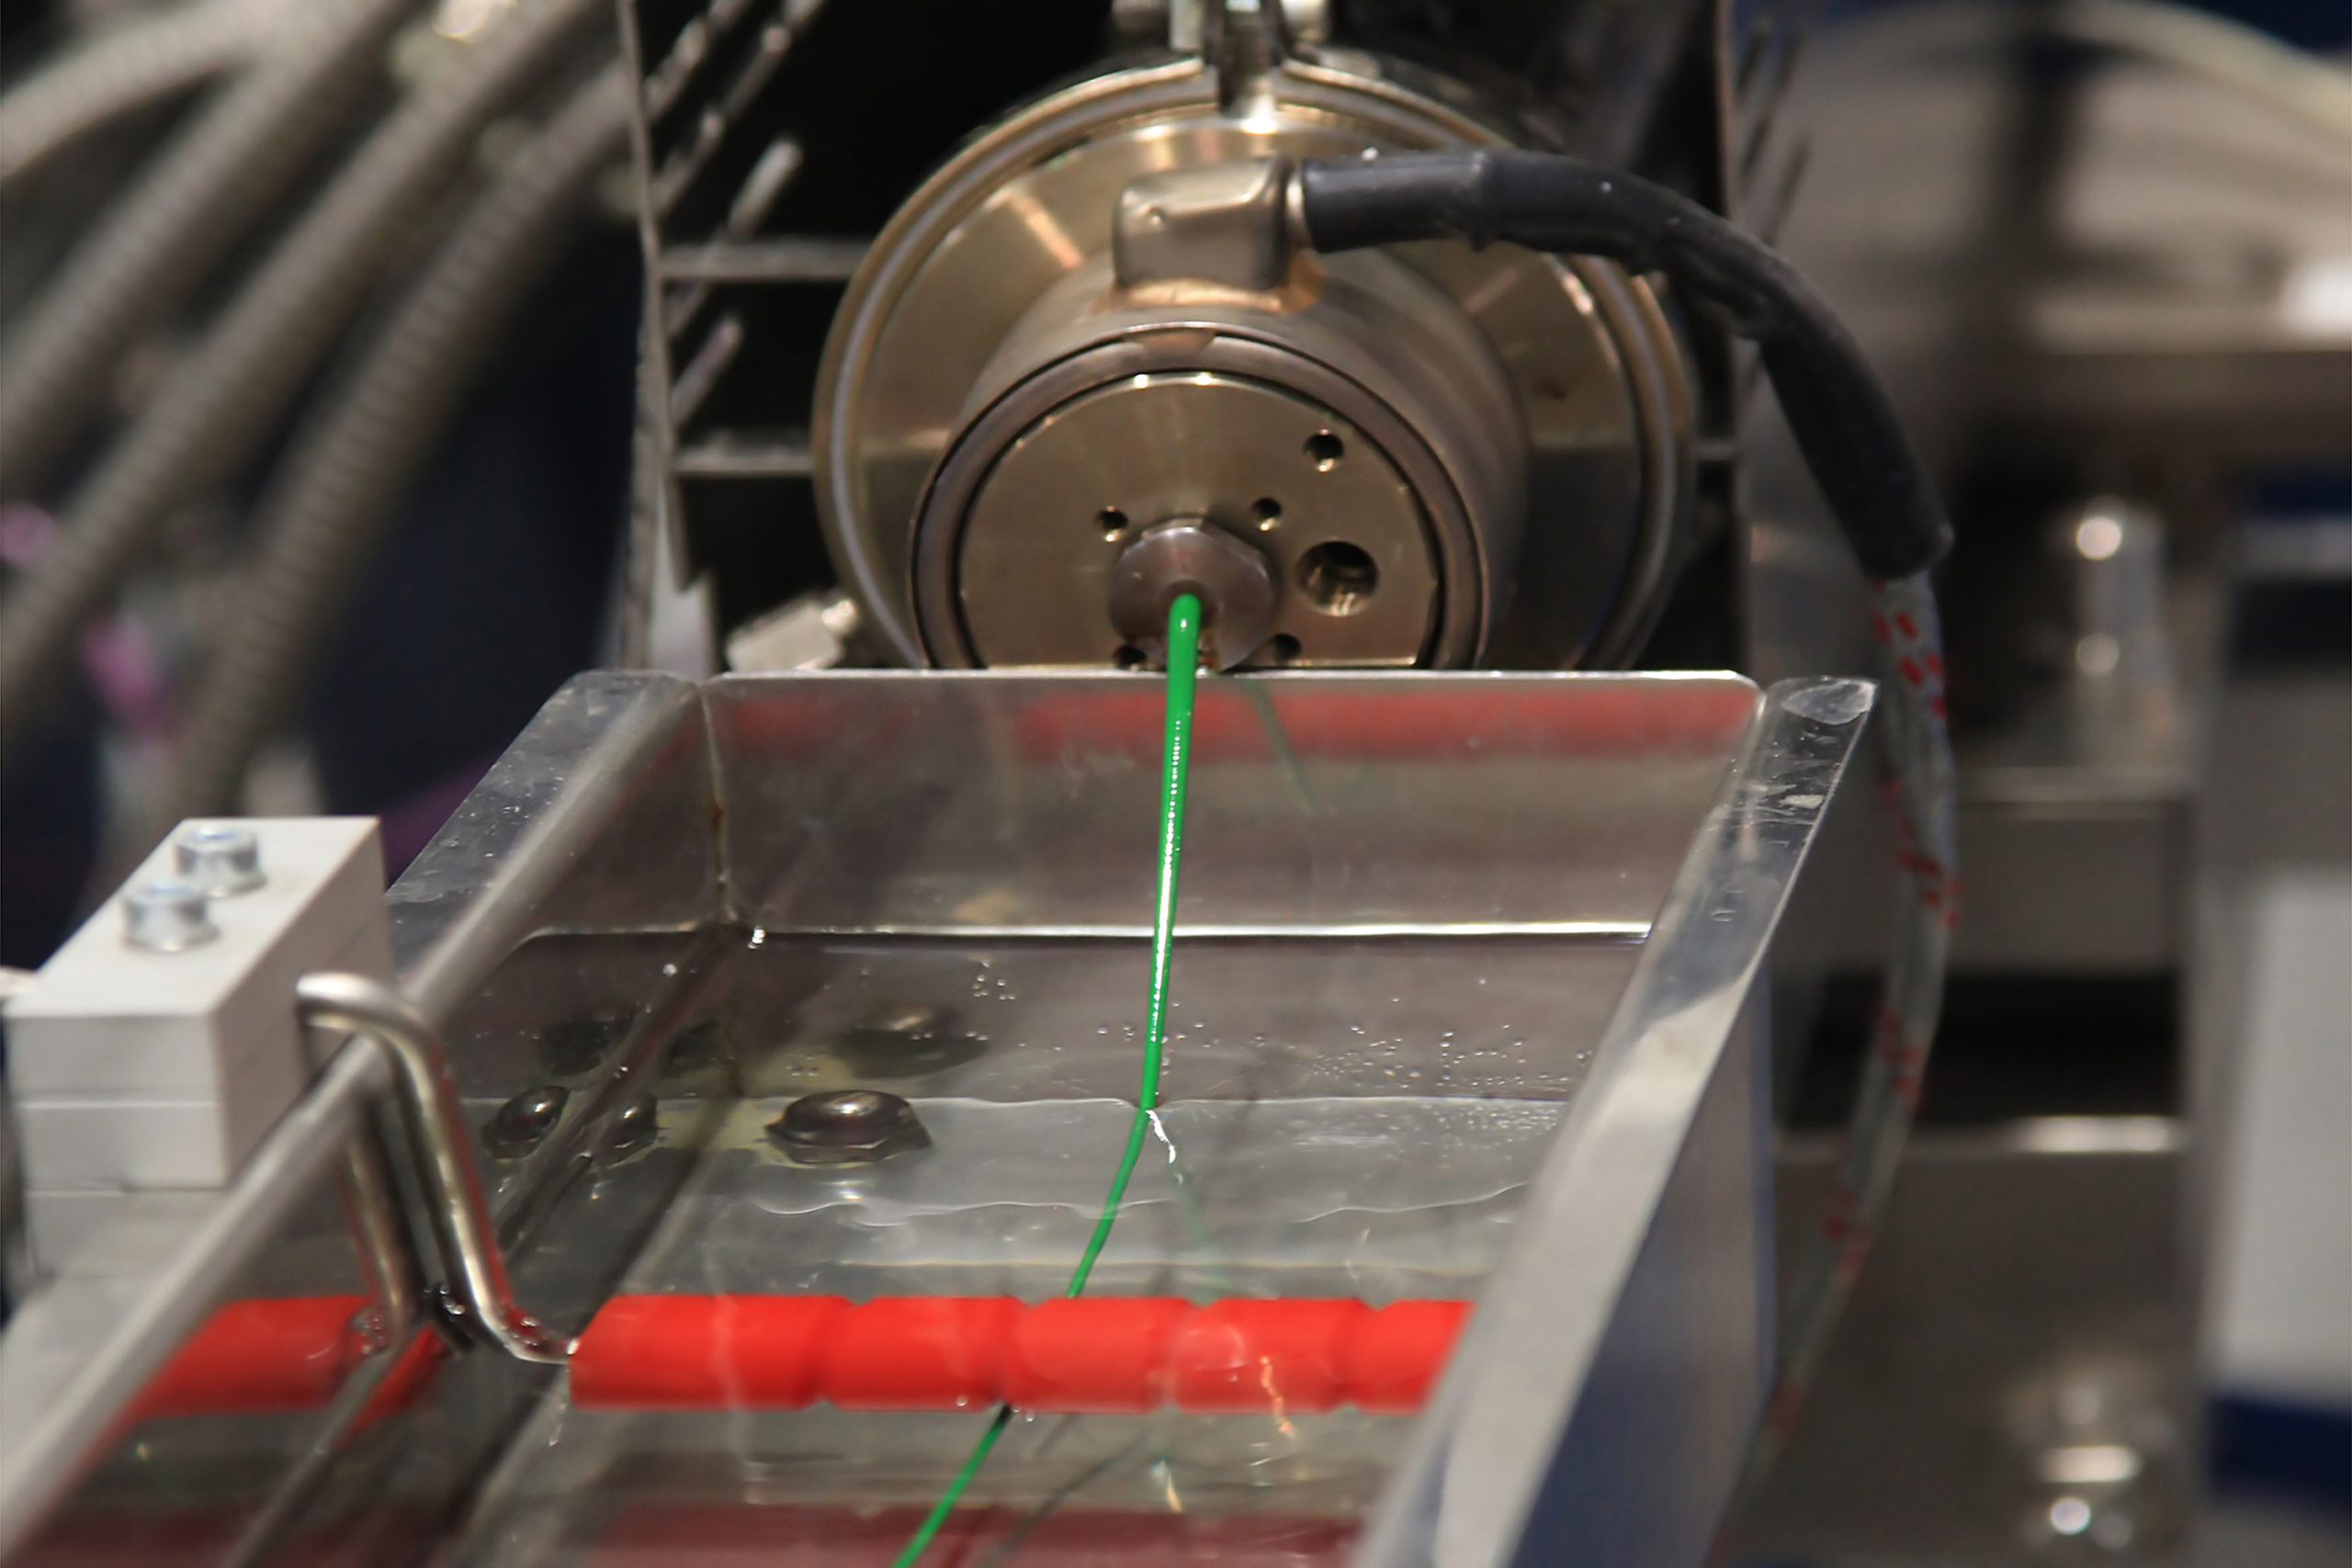 Continuous extrusion of plastic filament